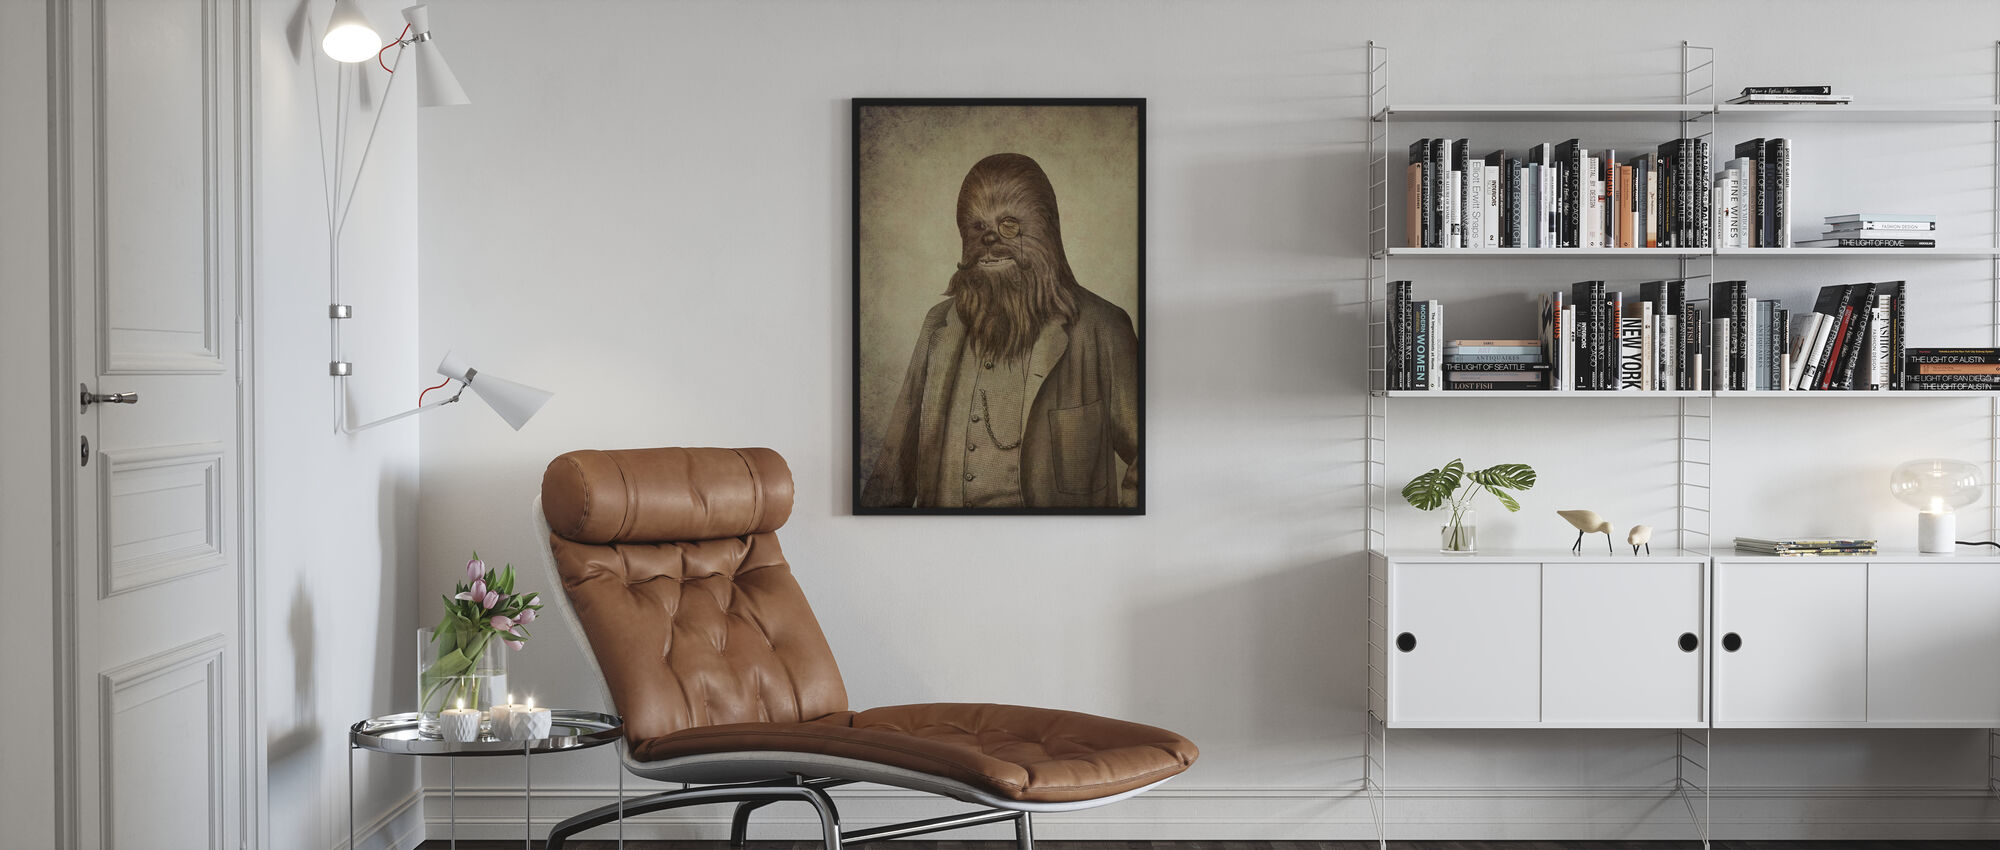 Victorian Wars Chancellor Chewman - Poster - Living Room